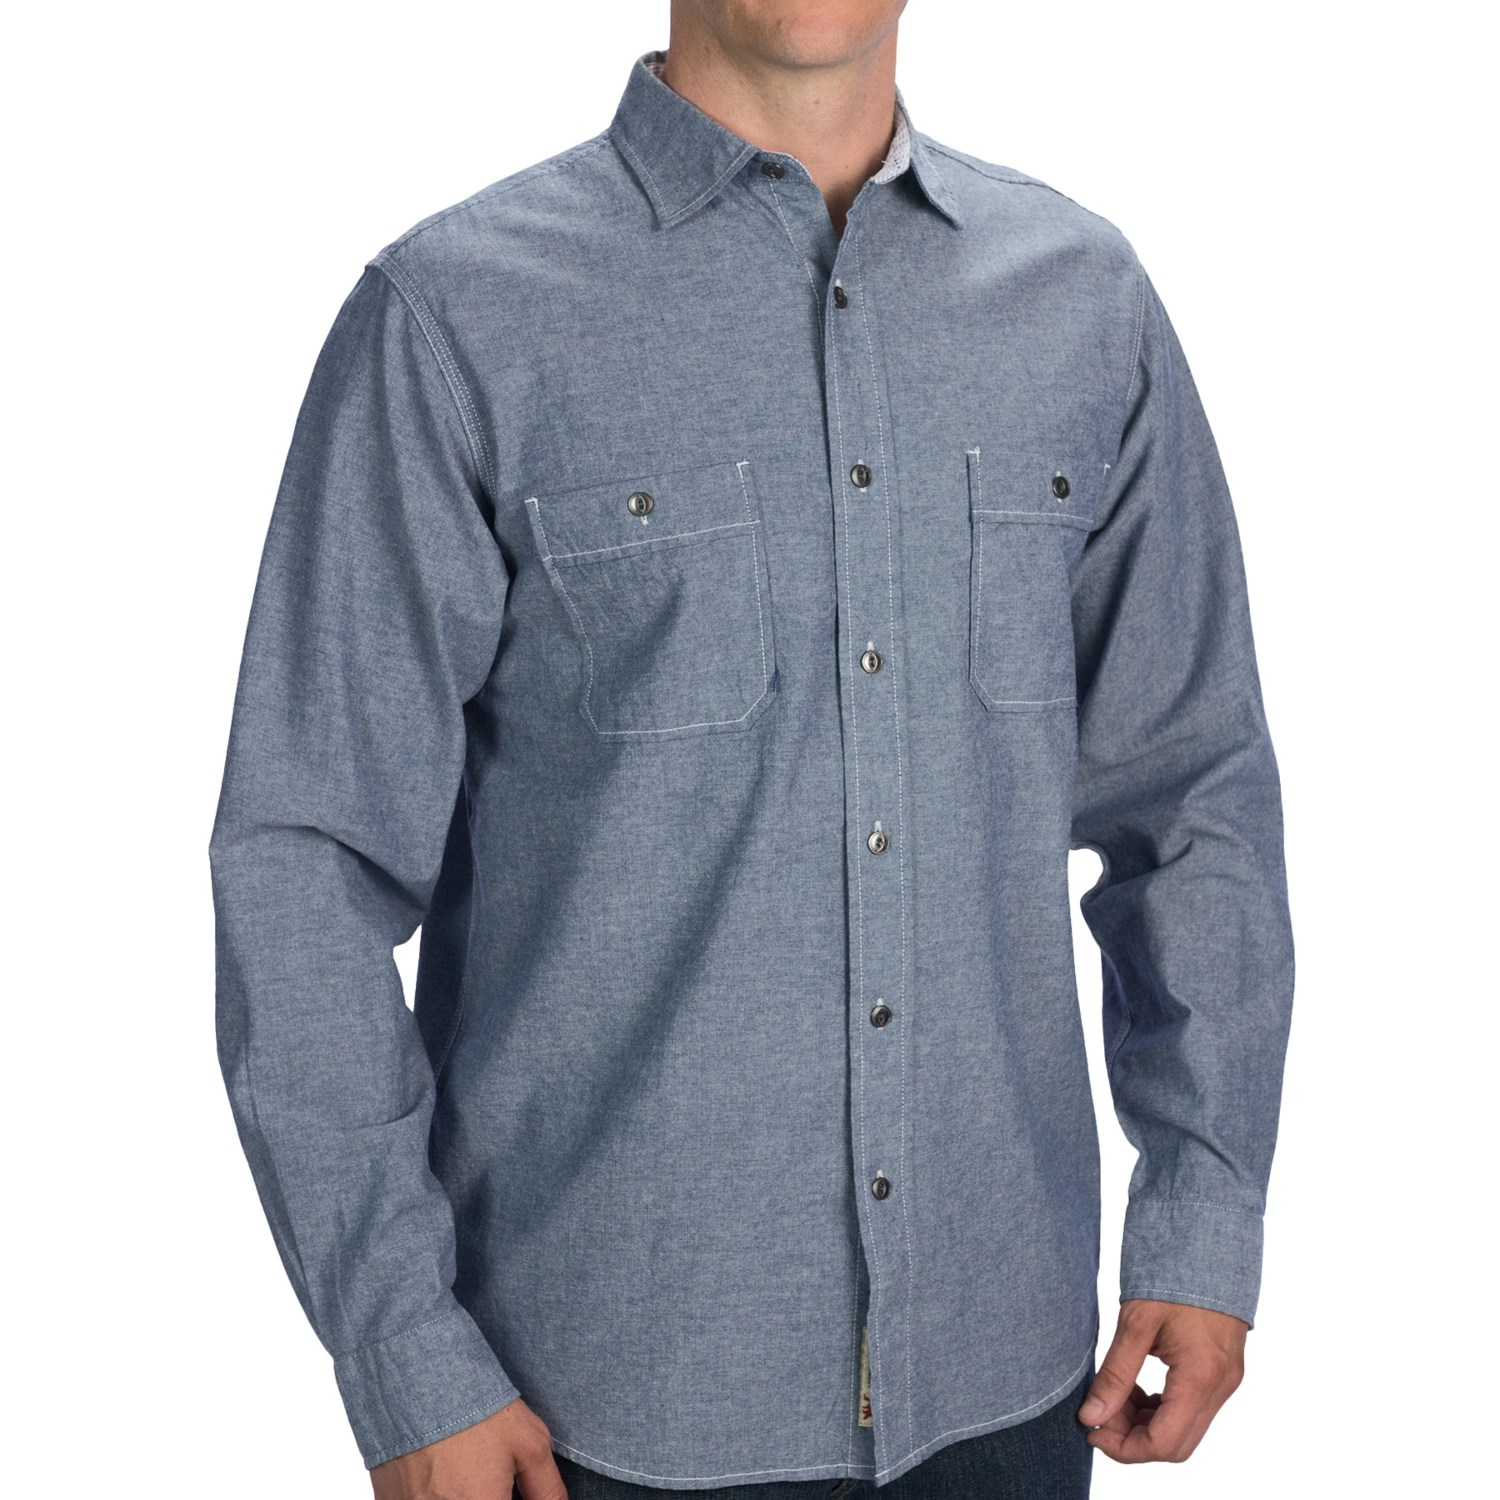 This Work Shirt offers both comfort, and durability making this one tough work shirt. This cotton shirt is the perfect shirt for a wide variety of jobs. It's constructed of 6 oz. fade resistant twill, with a two piece lined collar with permanent stays, and a button closure at the neck.